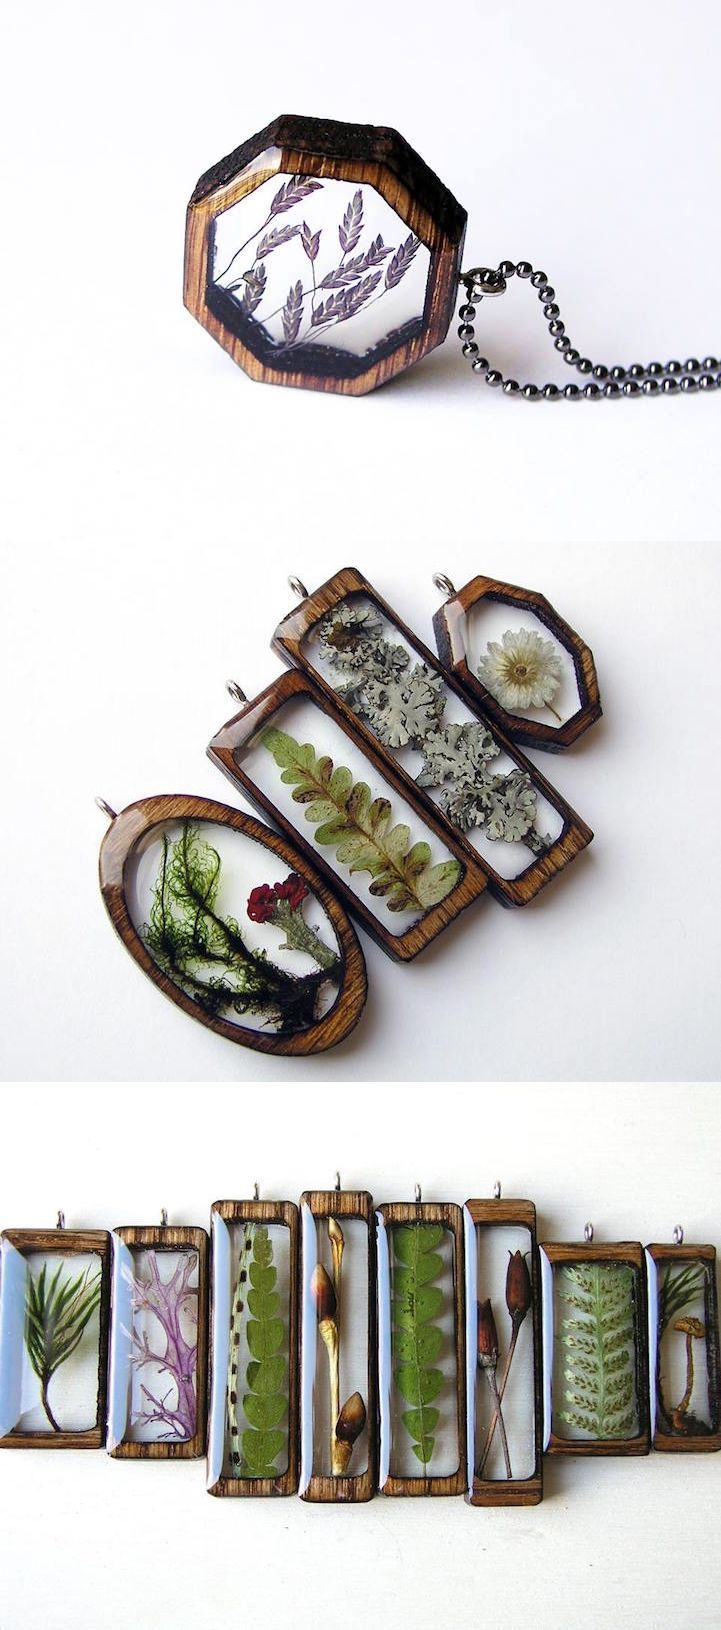 Artist Erin LaRocque (of BuildWithWood) creates beautiful pendants by encapsulating natural treasures, found in Michigans Hiawatha National Forest, in resin and laser-cut wood frames. #jewelry